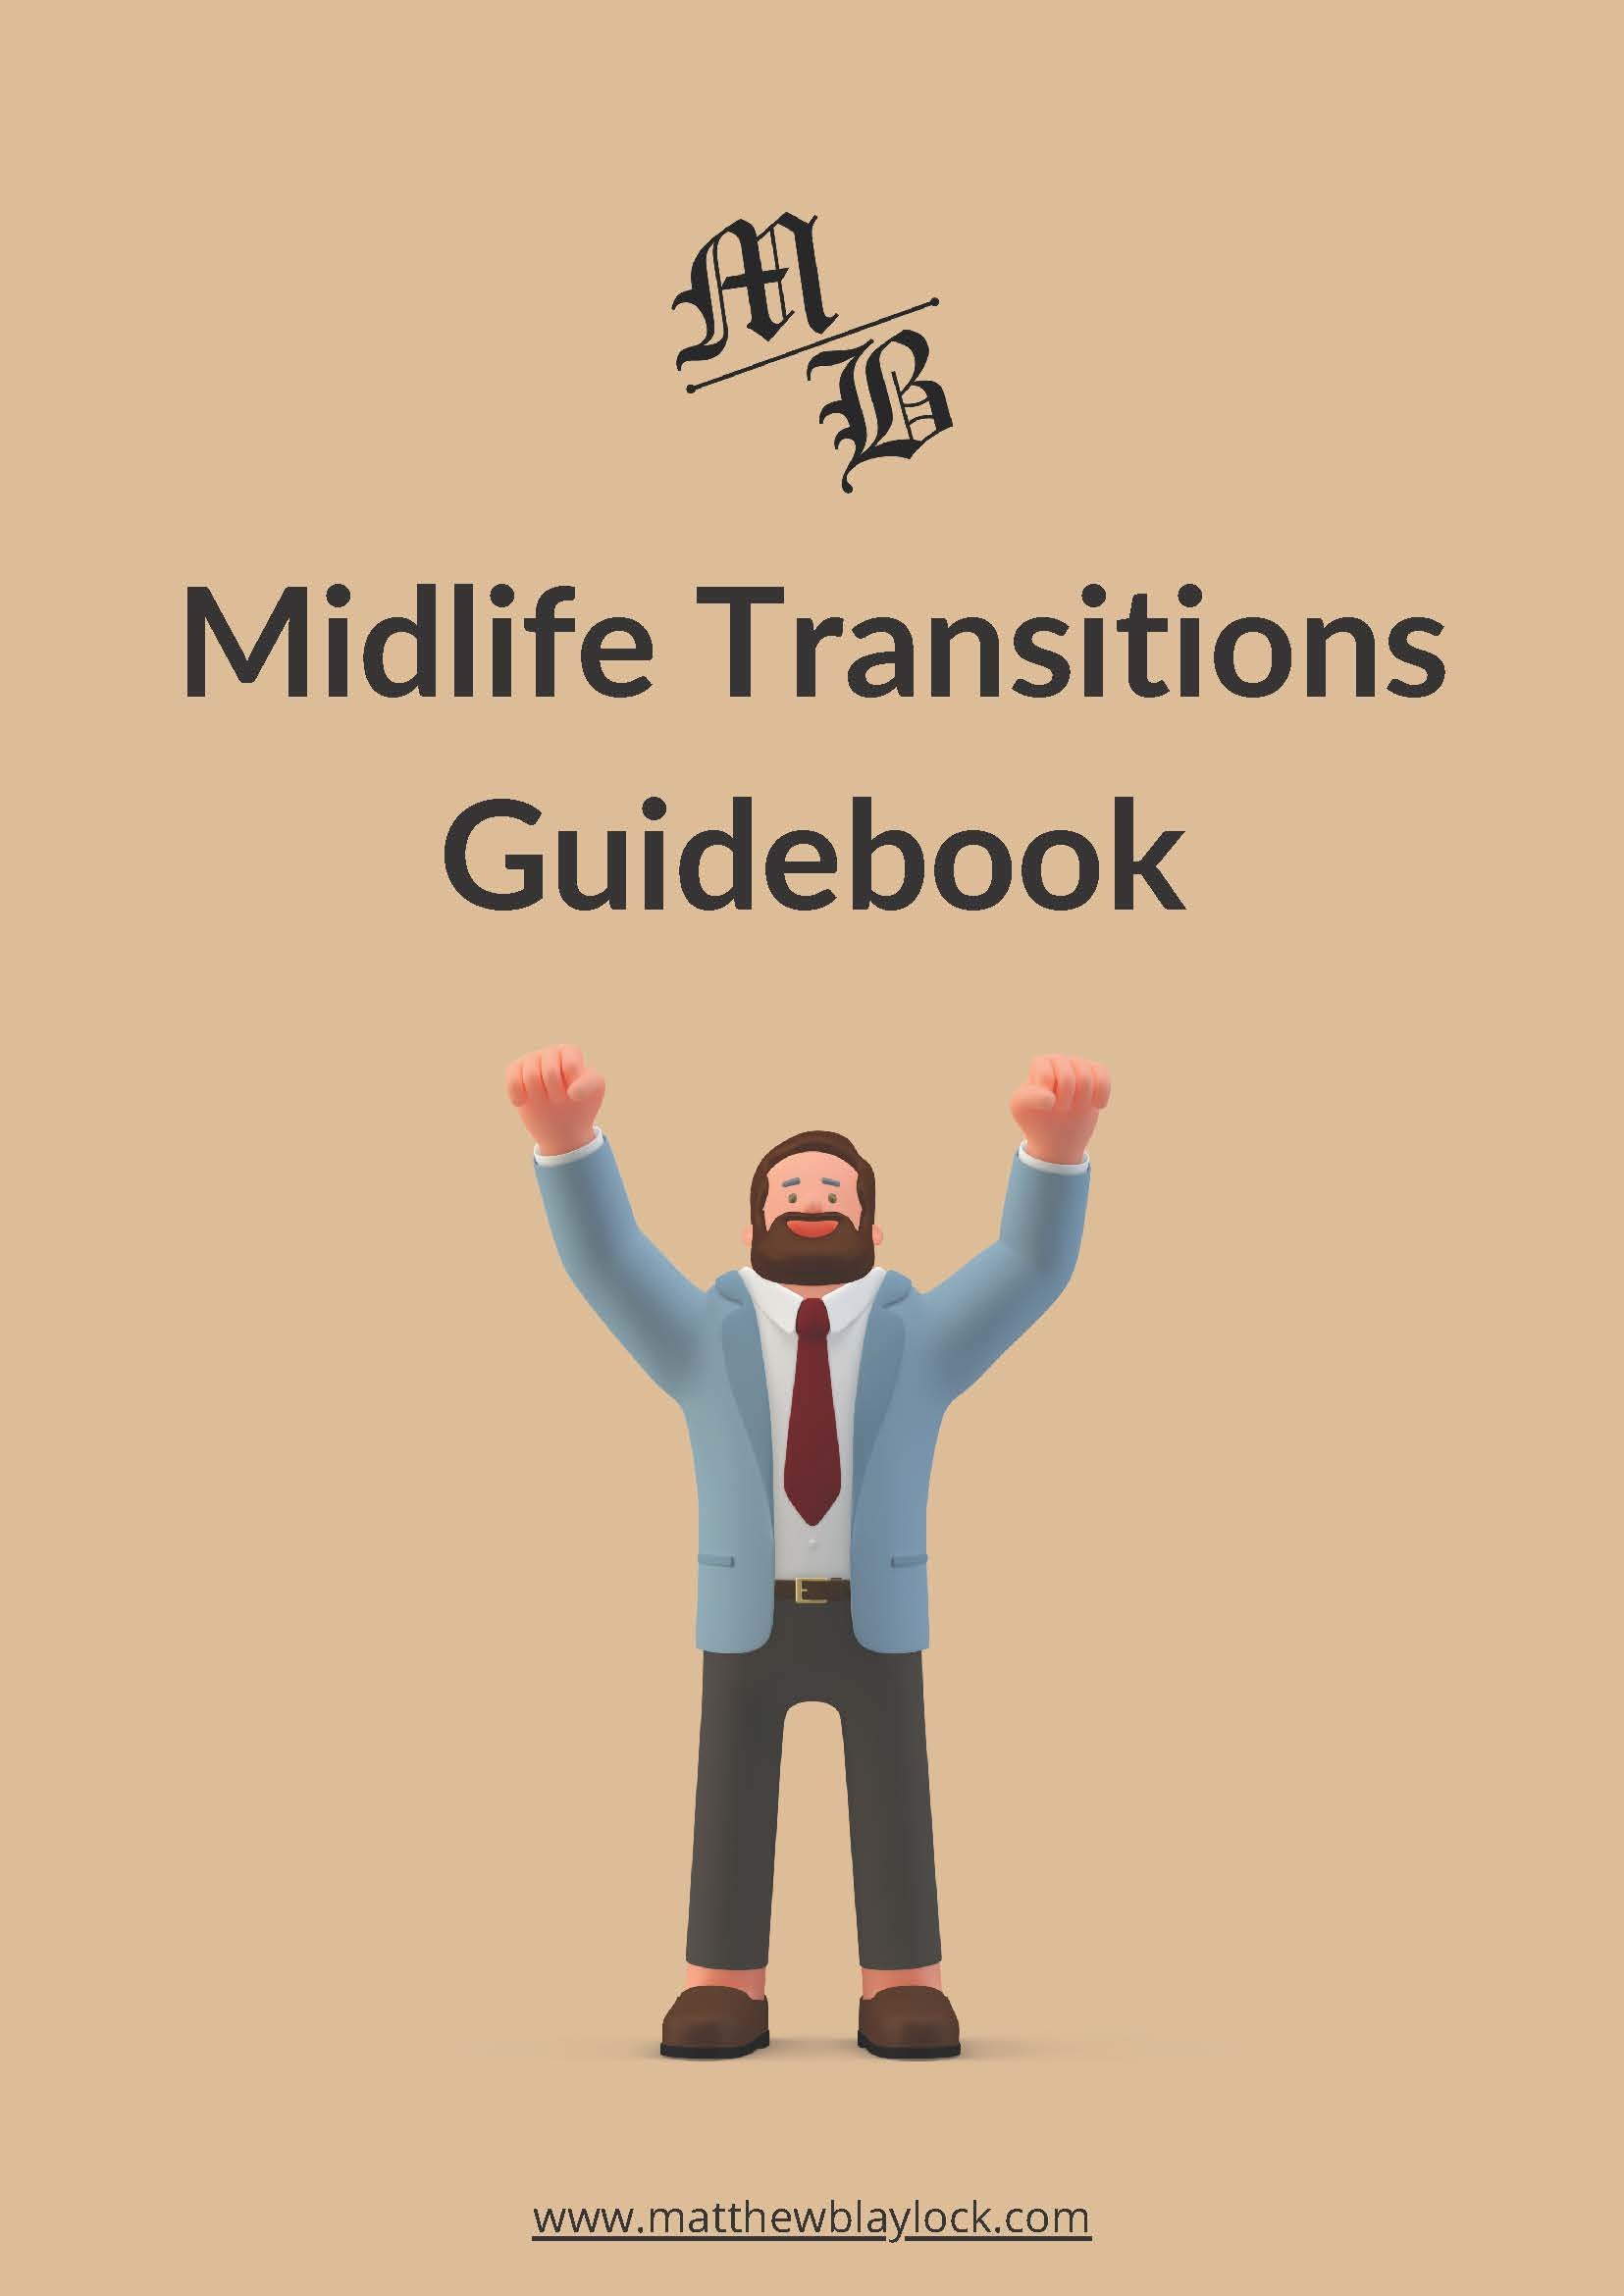 Midlife Transitions Guidebook